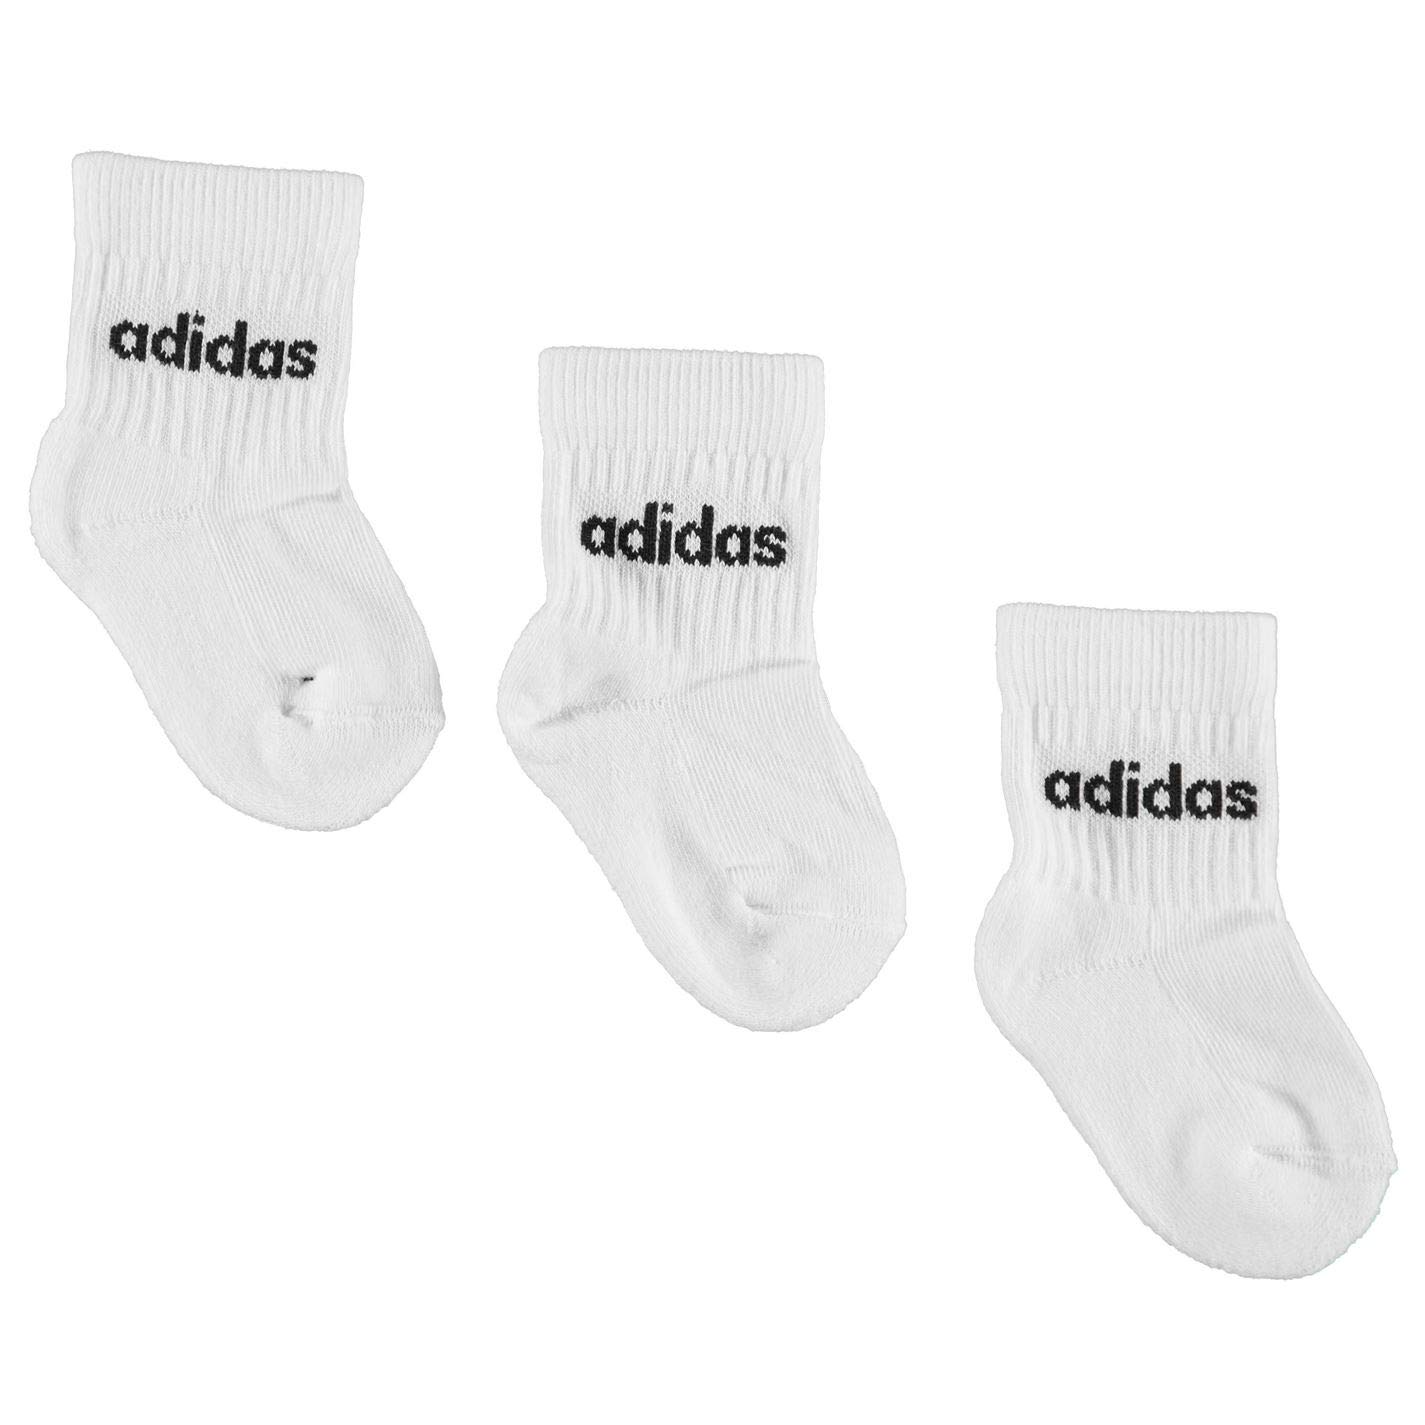 adidas Kids Crew Socks 3 Pack